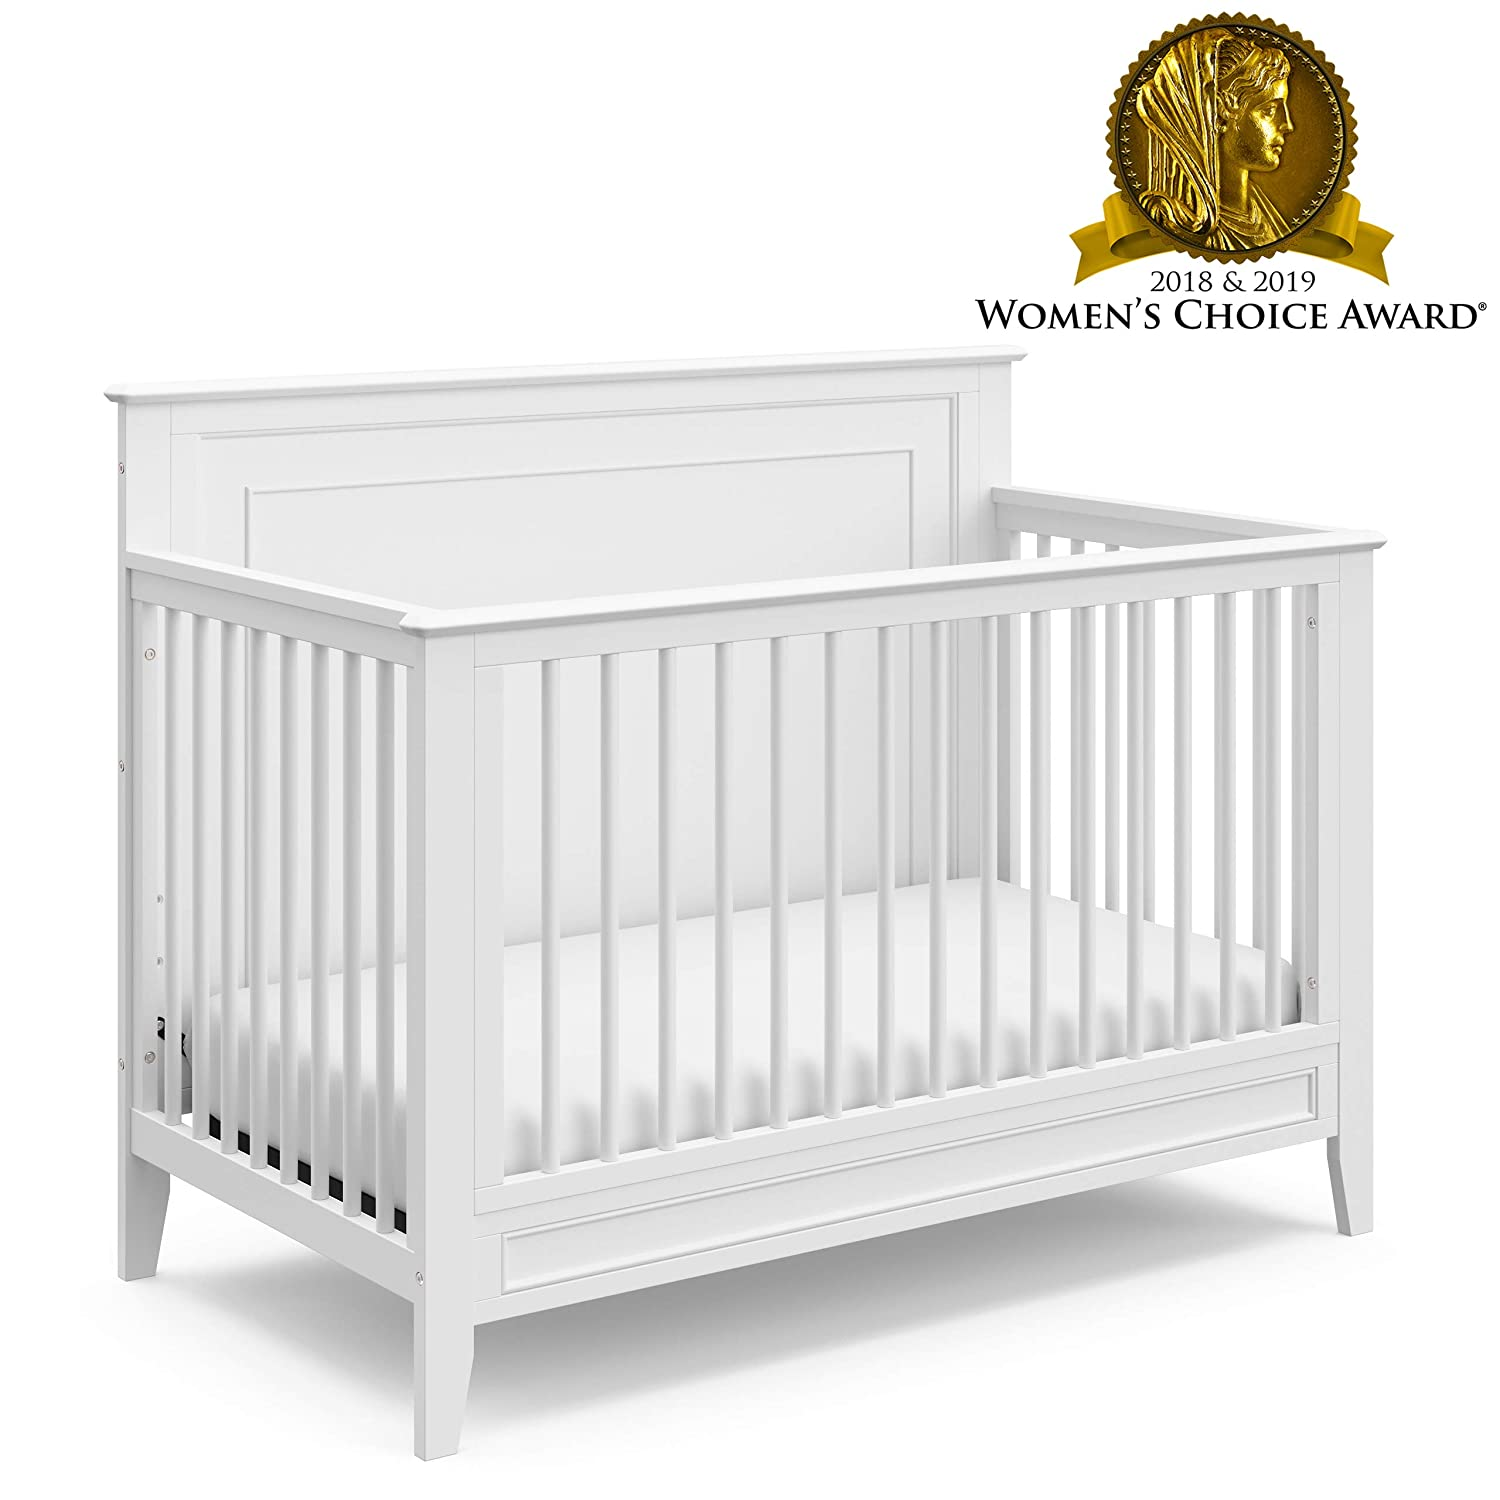 Storkcraft Solstice 4-in-1 Convertible Crib White – Easily Converts into Toddler Bed, Daybed, or Full-Size Bed